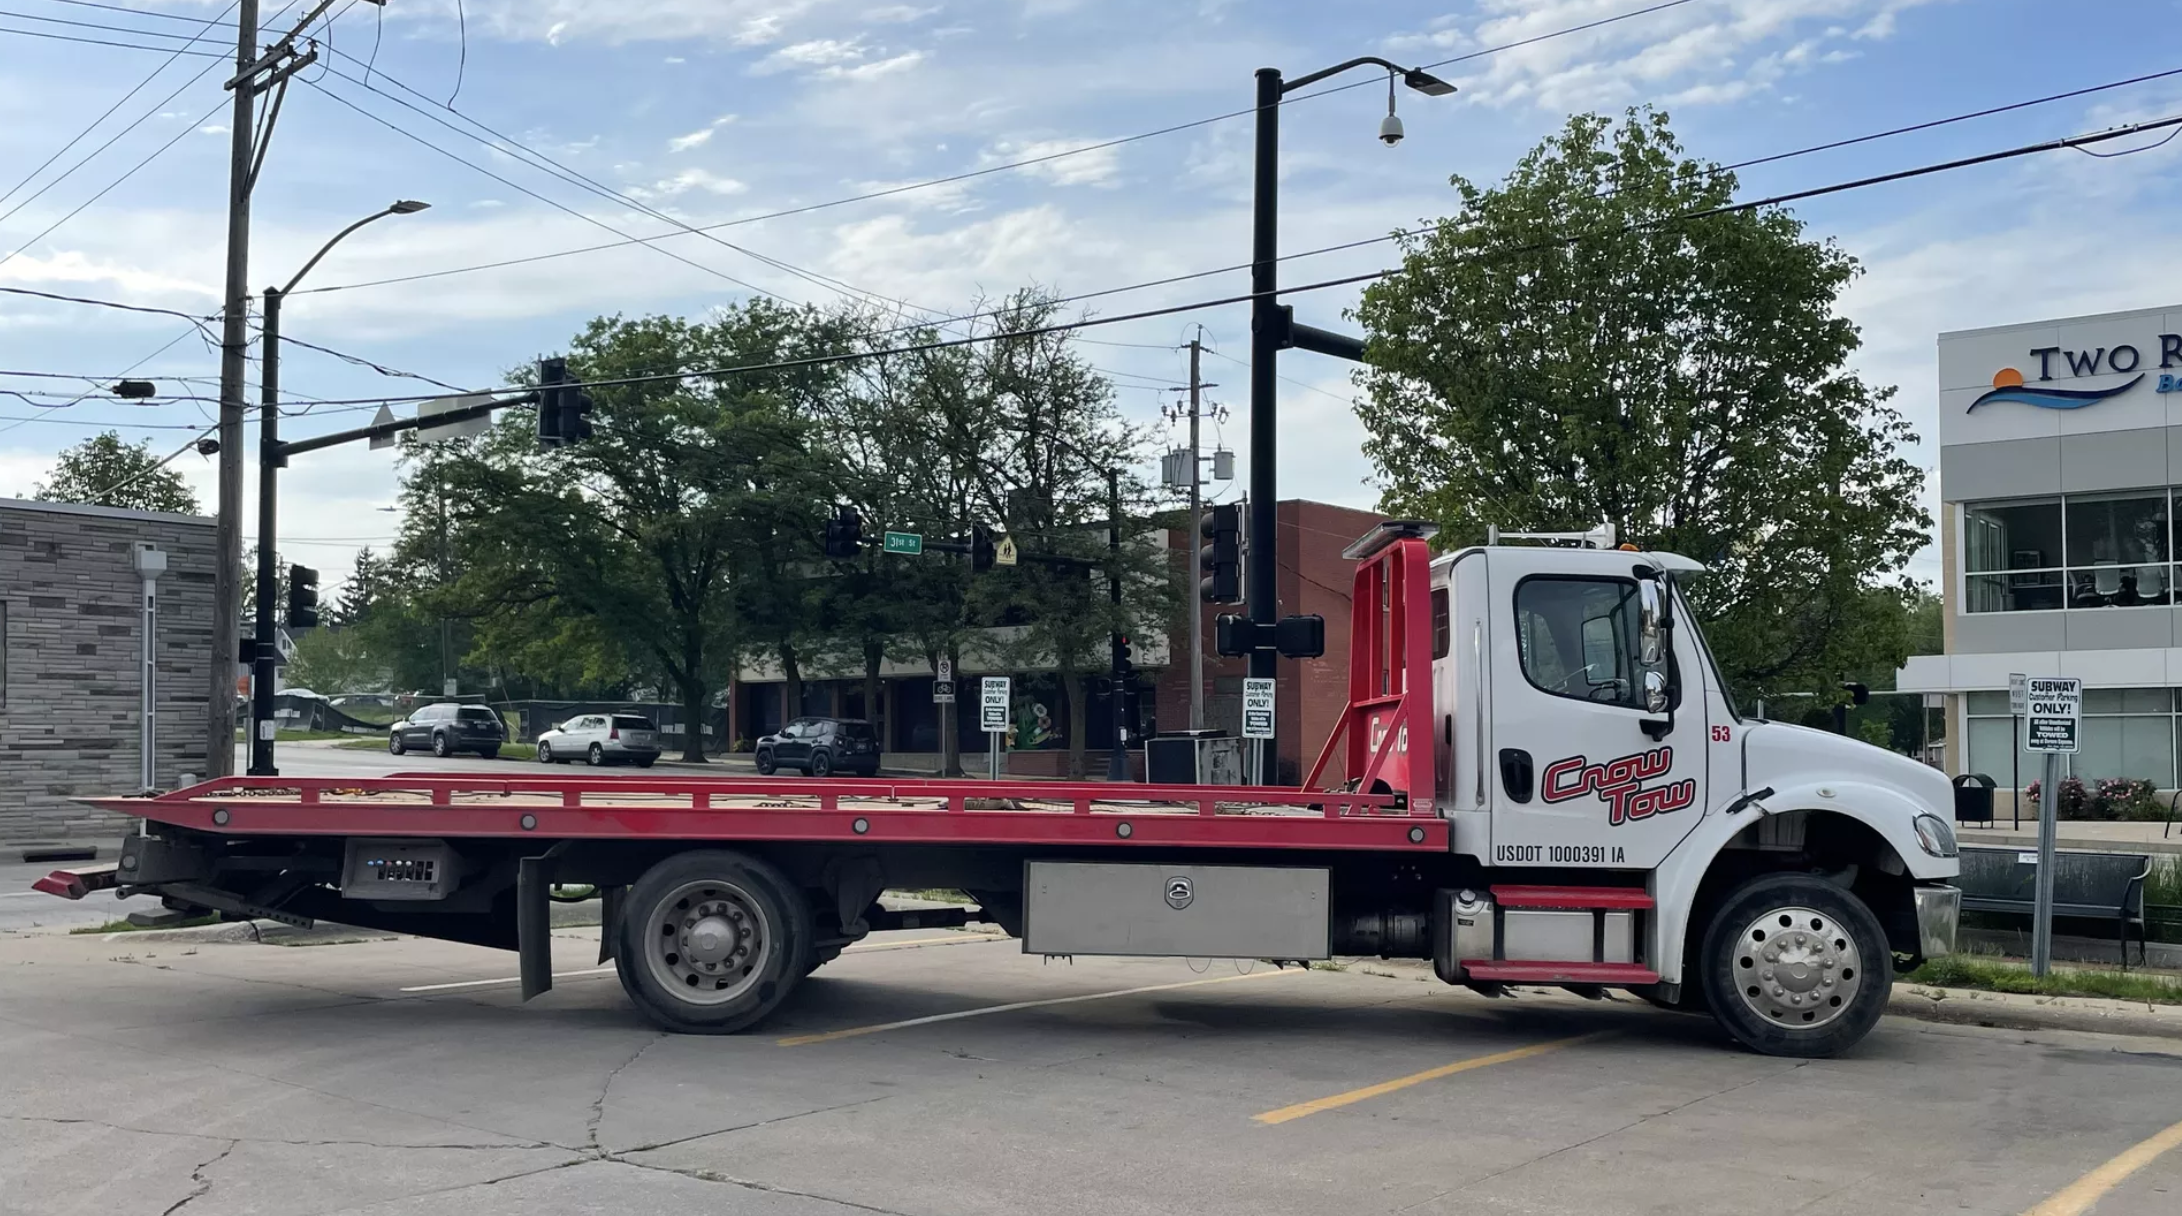 A Crow Tow truck in a Subway parking lot in Des Moines.